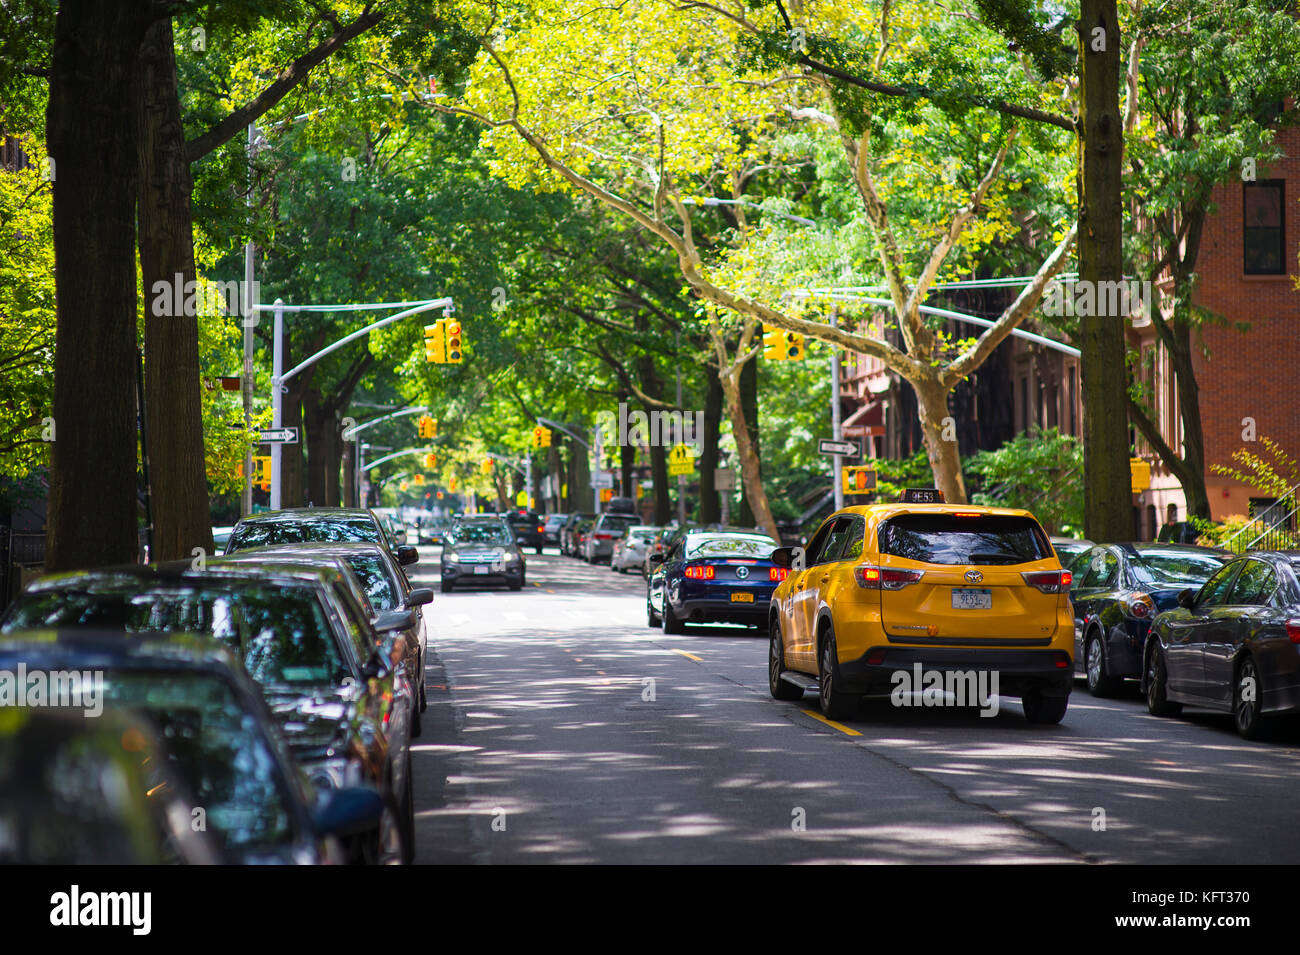 New York - 27 août 2017 : a new york yellow cab durs le long d'une rue verdoyante à Park Slope, Photo Stock